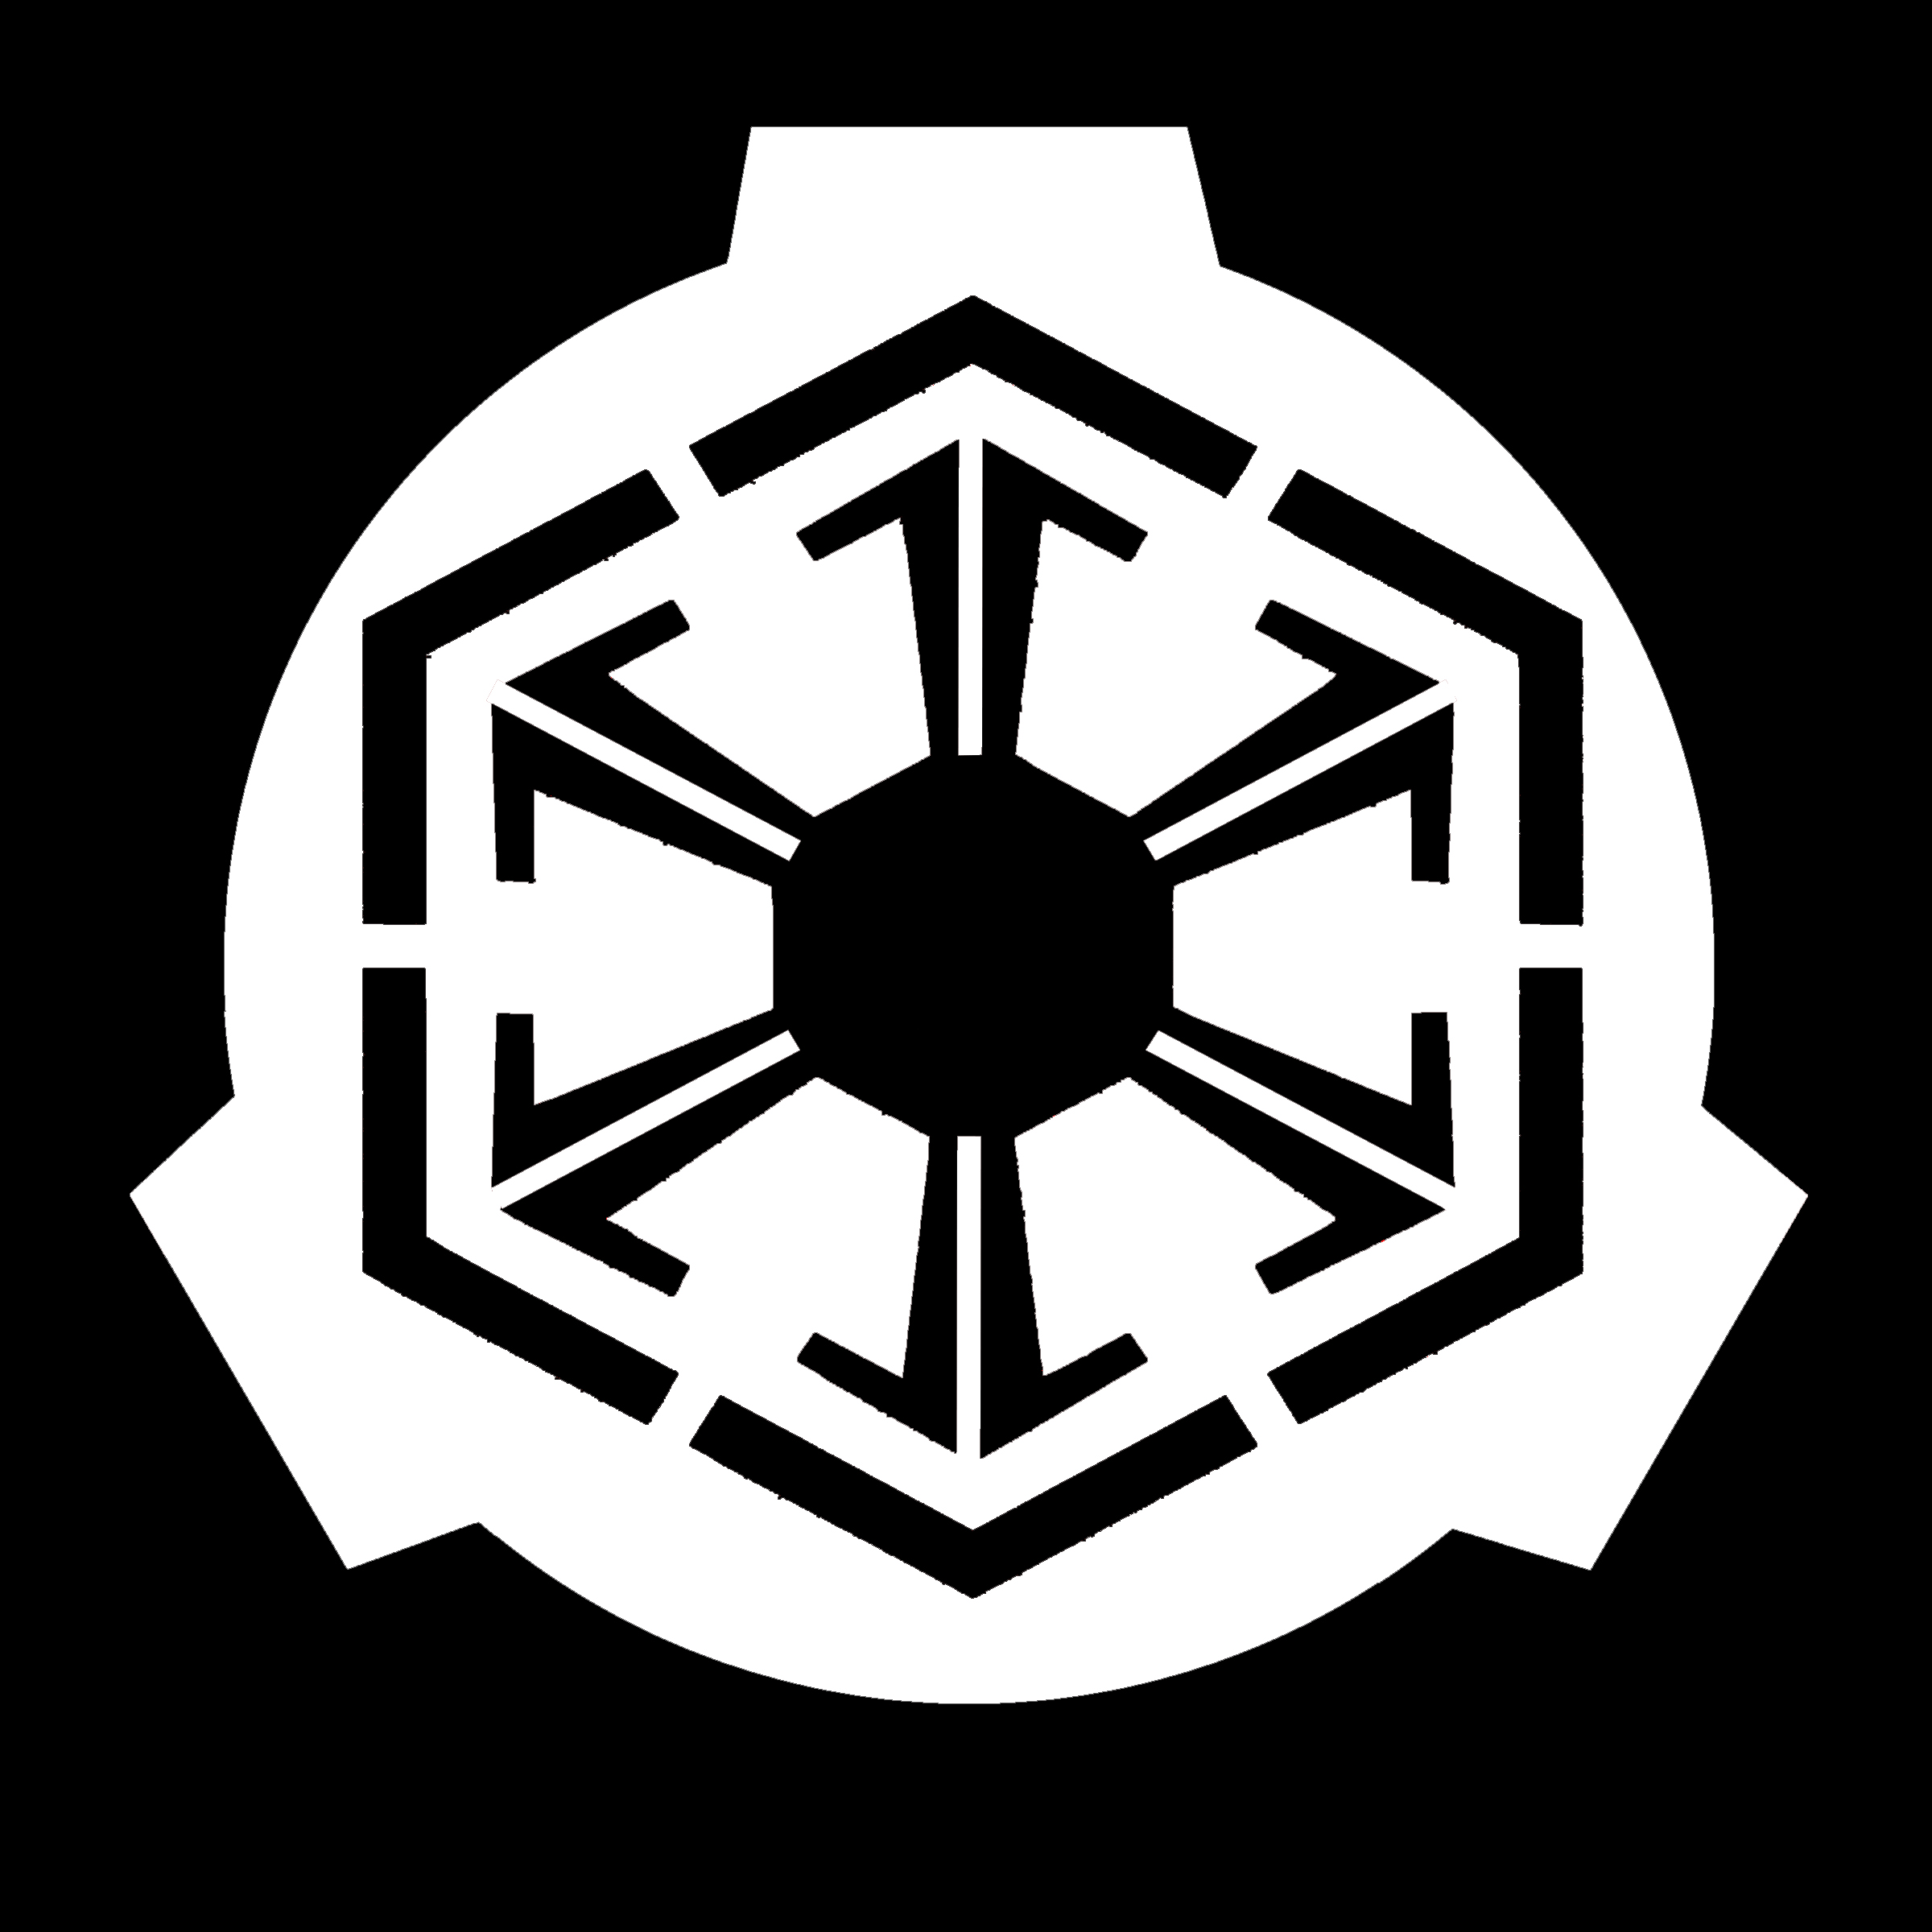 [Image: Sith_Research_Division_logo_v1.png]